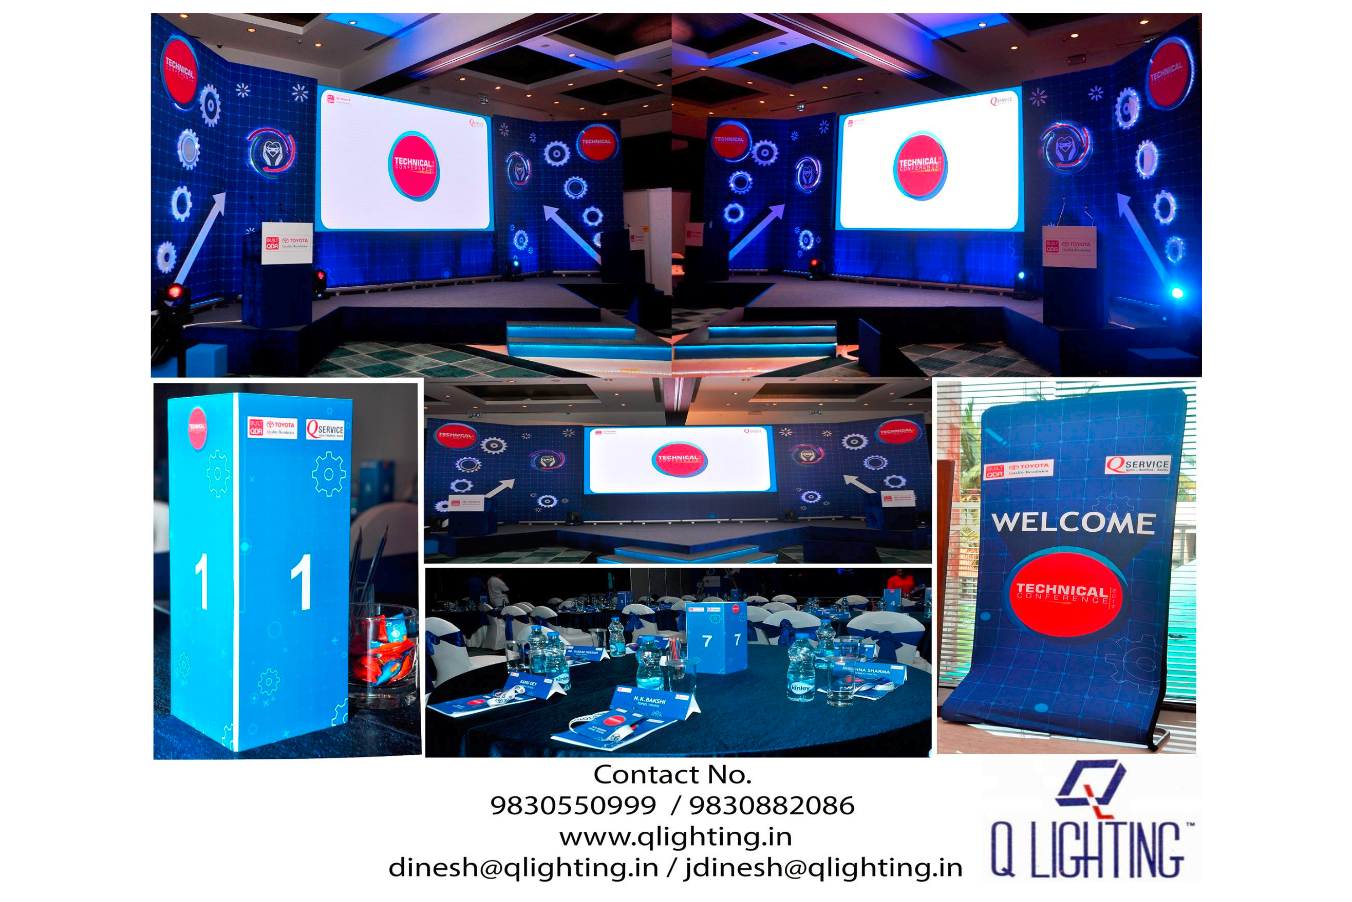 Q Lighting provided services at Toyota Technical Conference at ITC Sonar, Kolkata, A Luxury Collection Hotel.